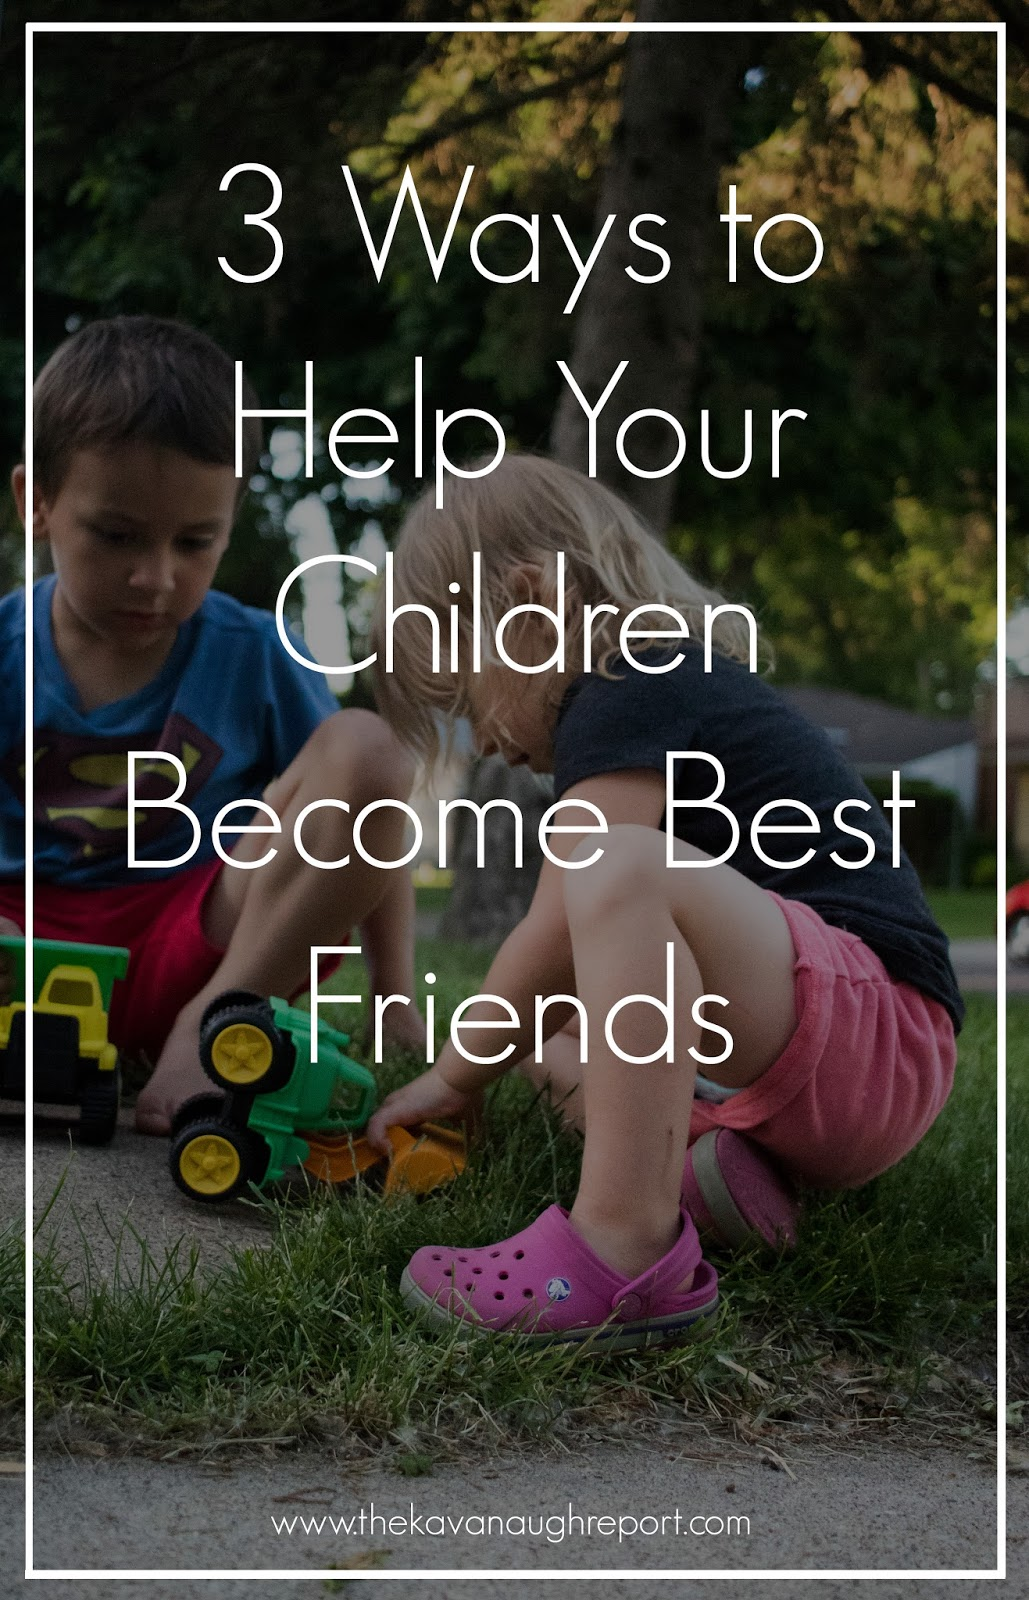 How to become the best friend 46